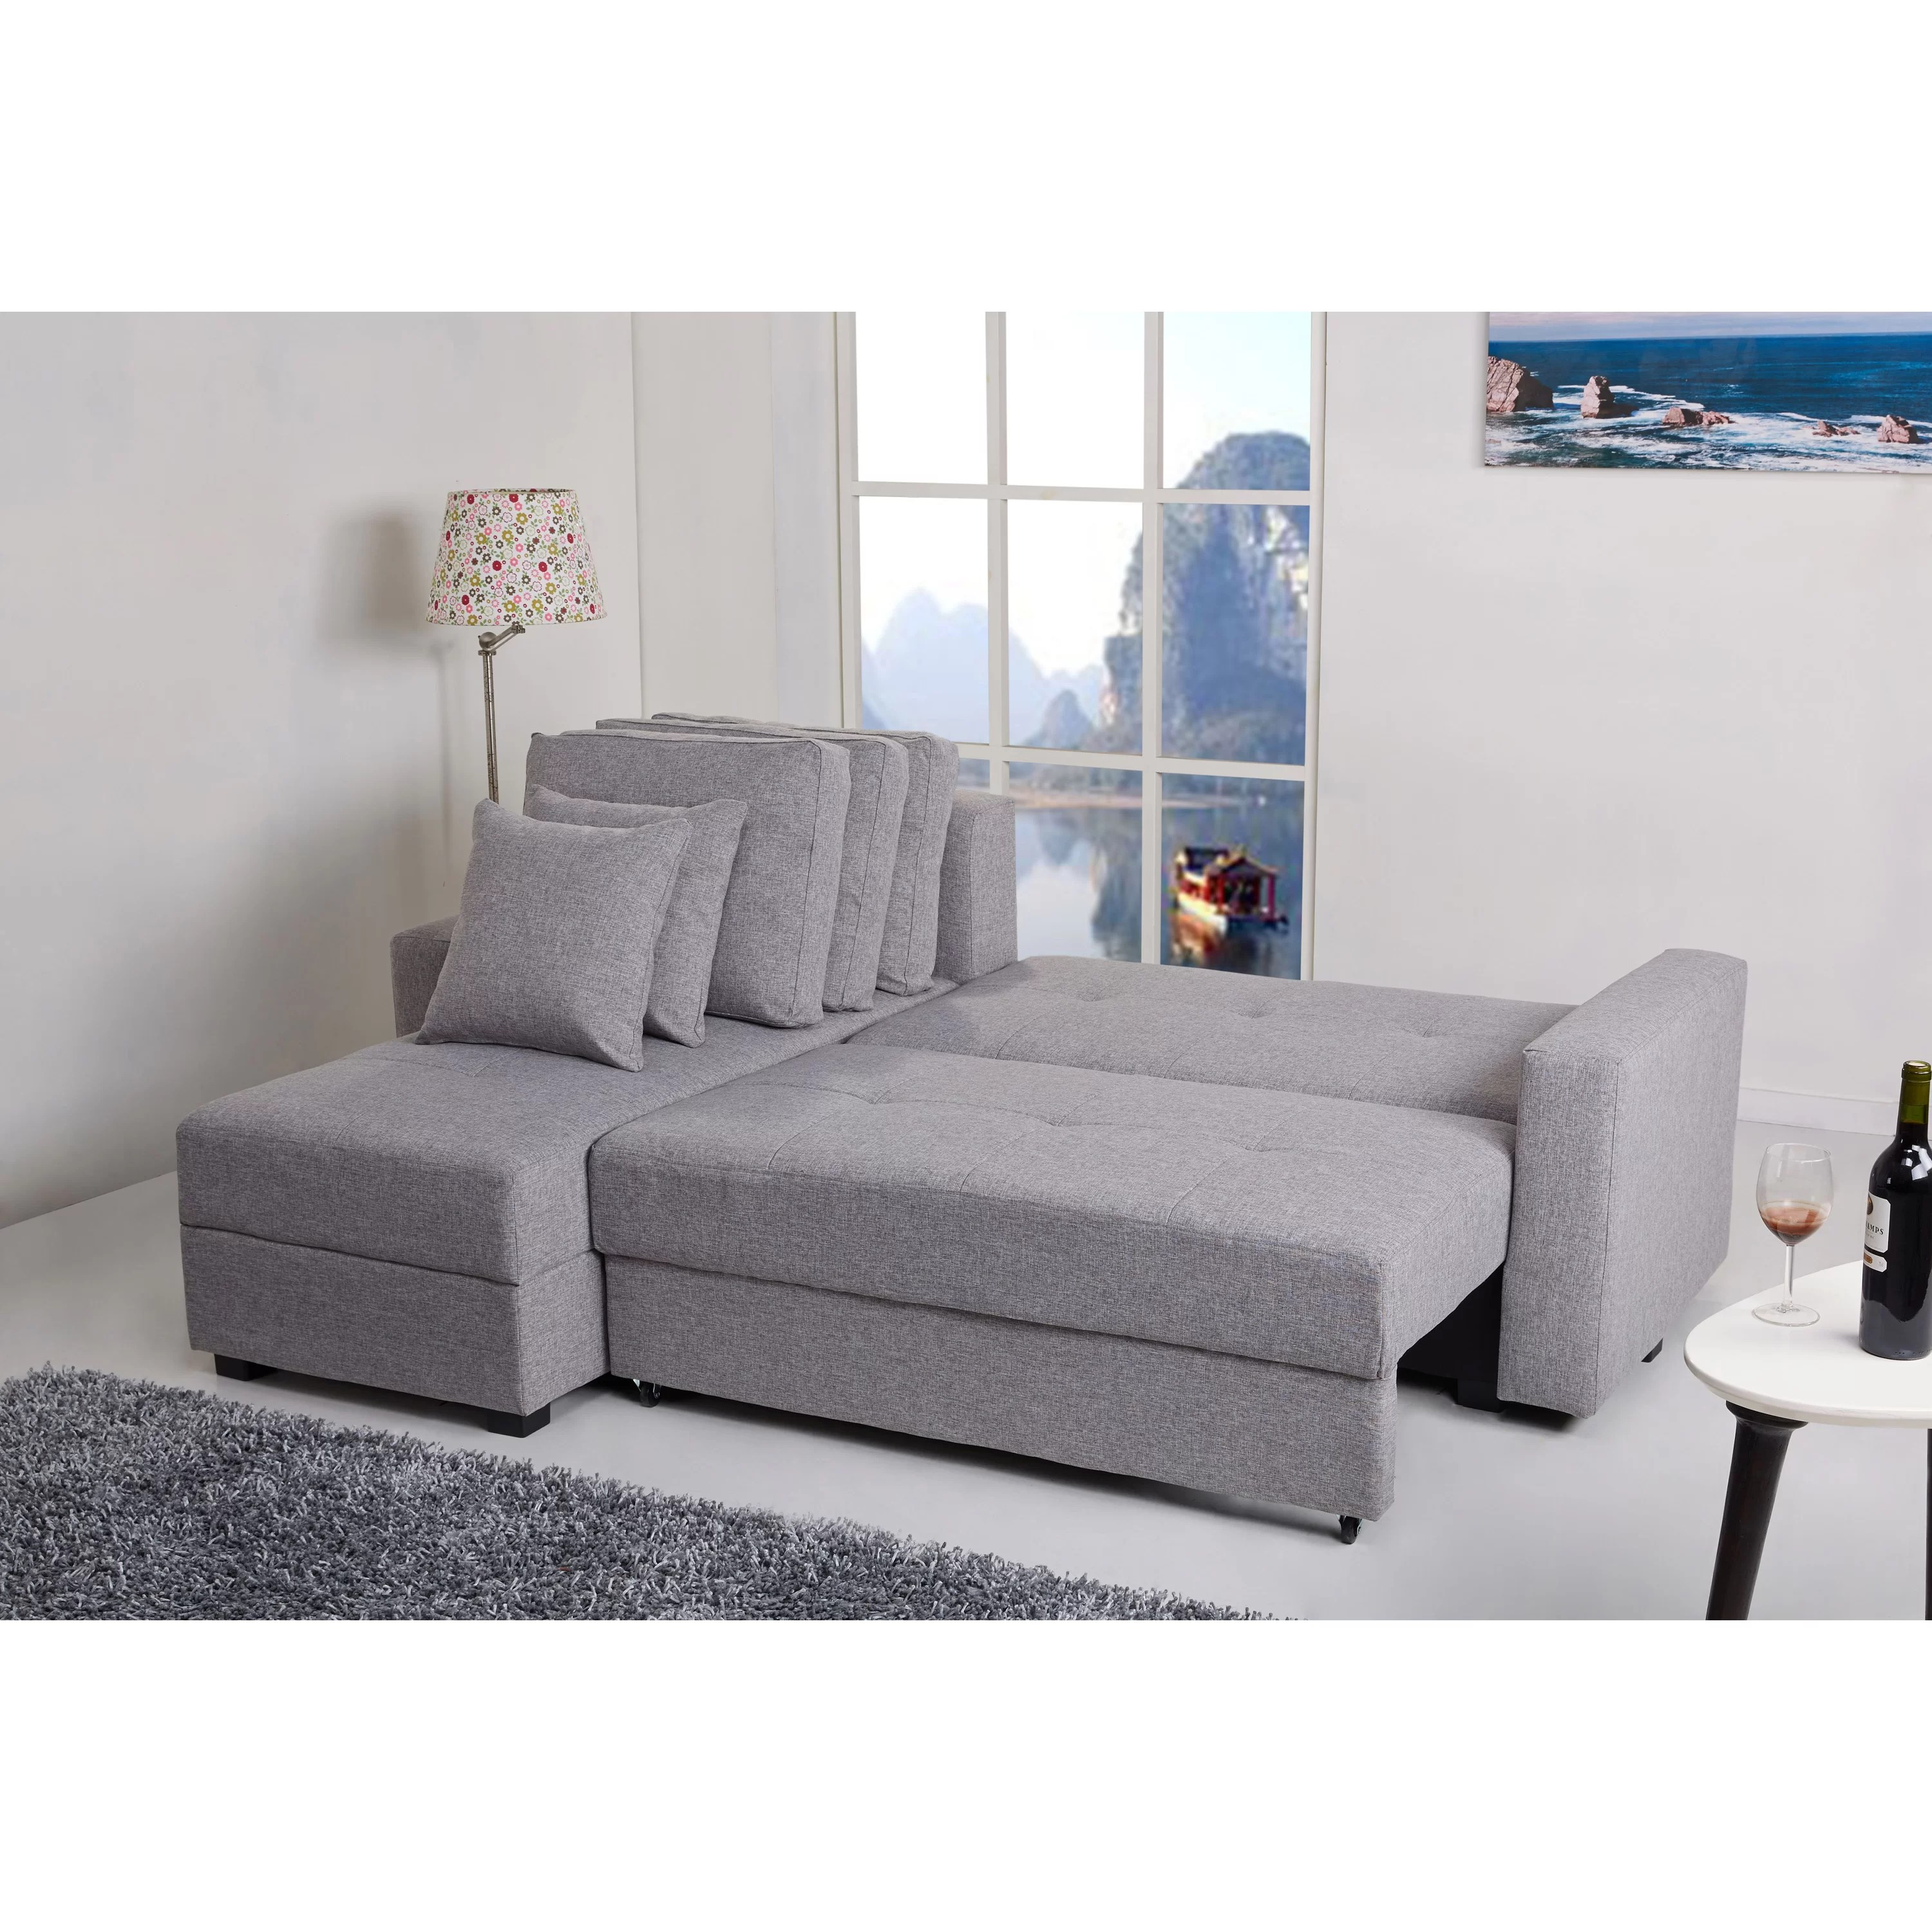 aspen convertible sectional storage sofa bed everest 3 piece with and 2 chaises gold sparrow reversible chaise reviews